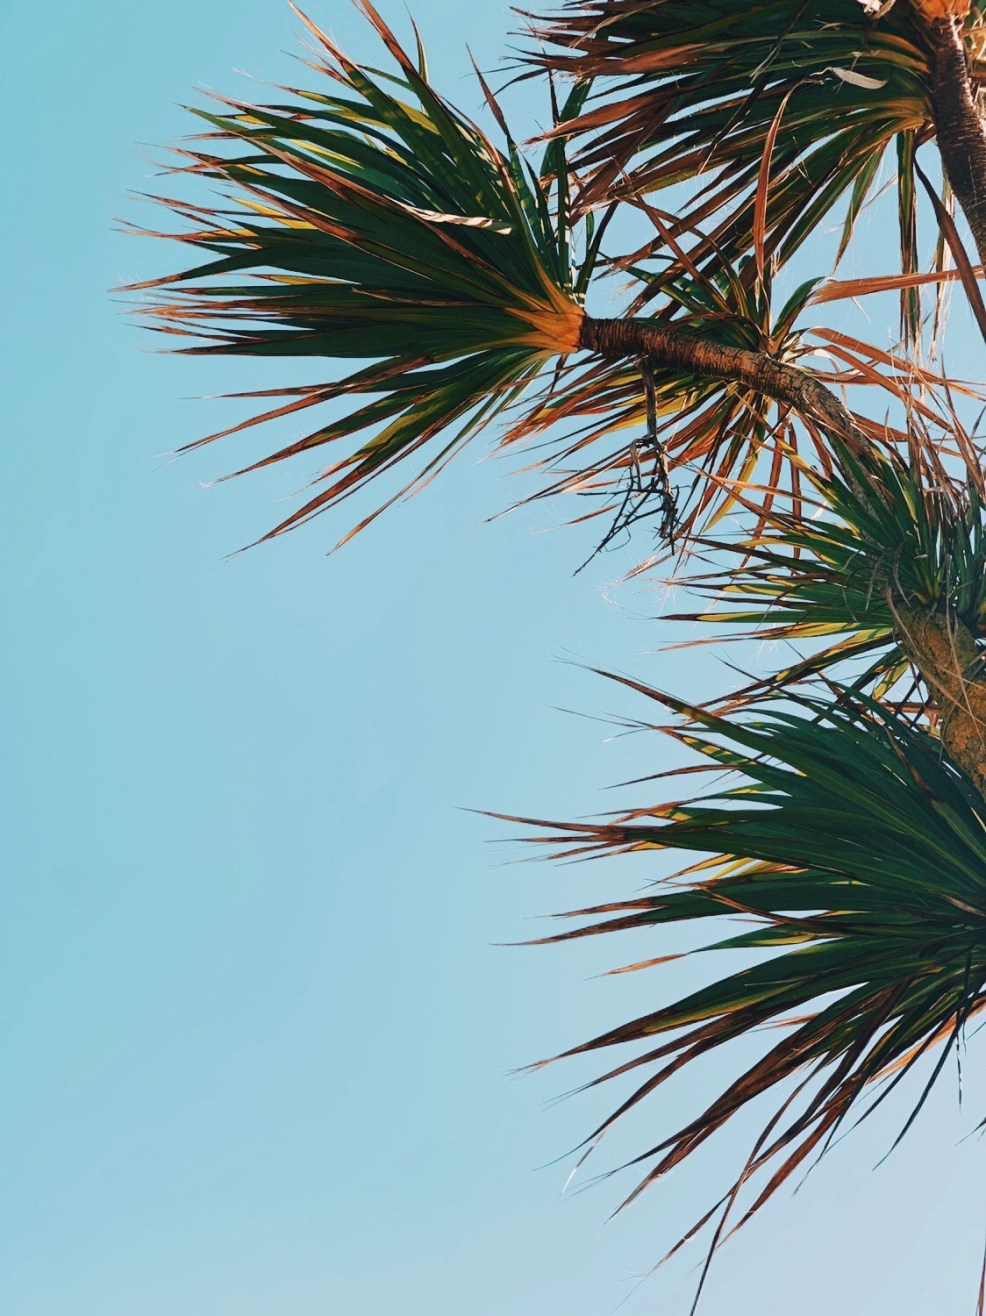 Jaye rockett things worth photographing palm trees blue sky bournemouth beach